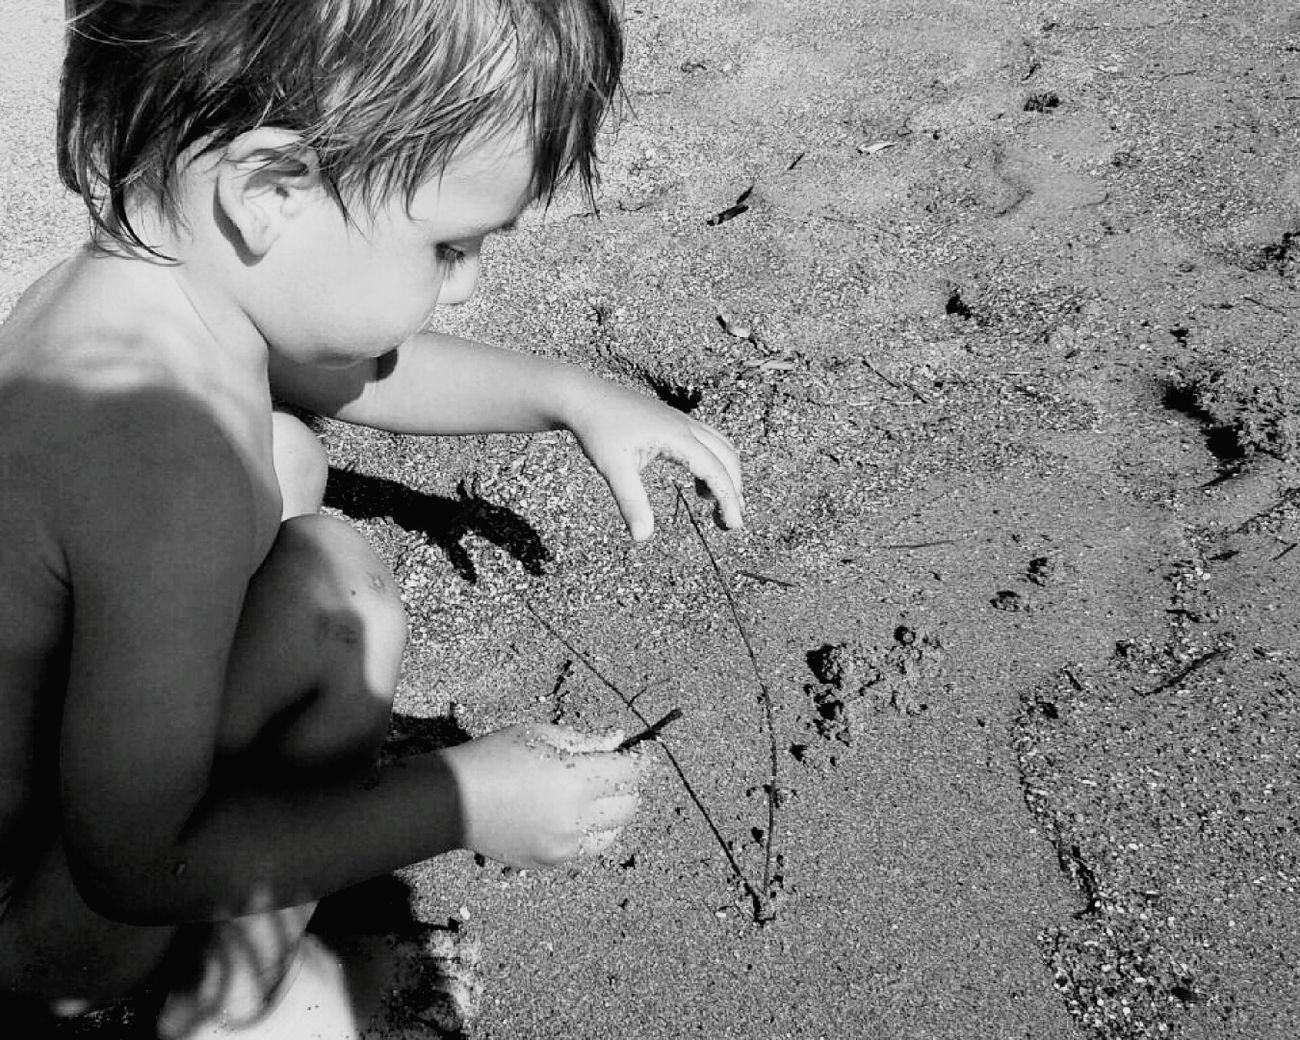 Beach Child So Lovely Adore Playing Sandcastles Uniqueness EyeEmNewHere